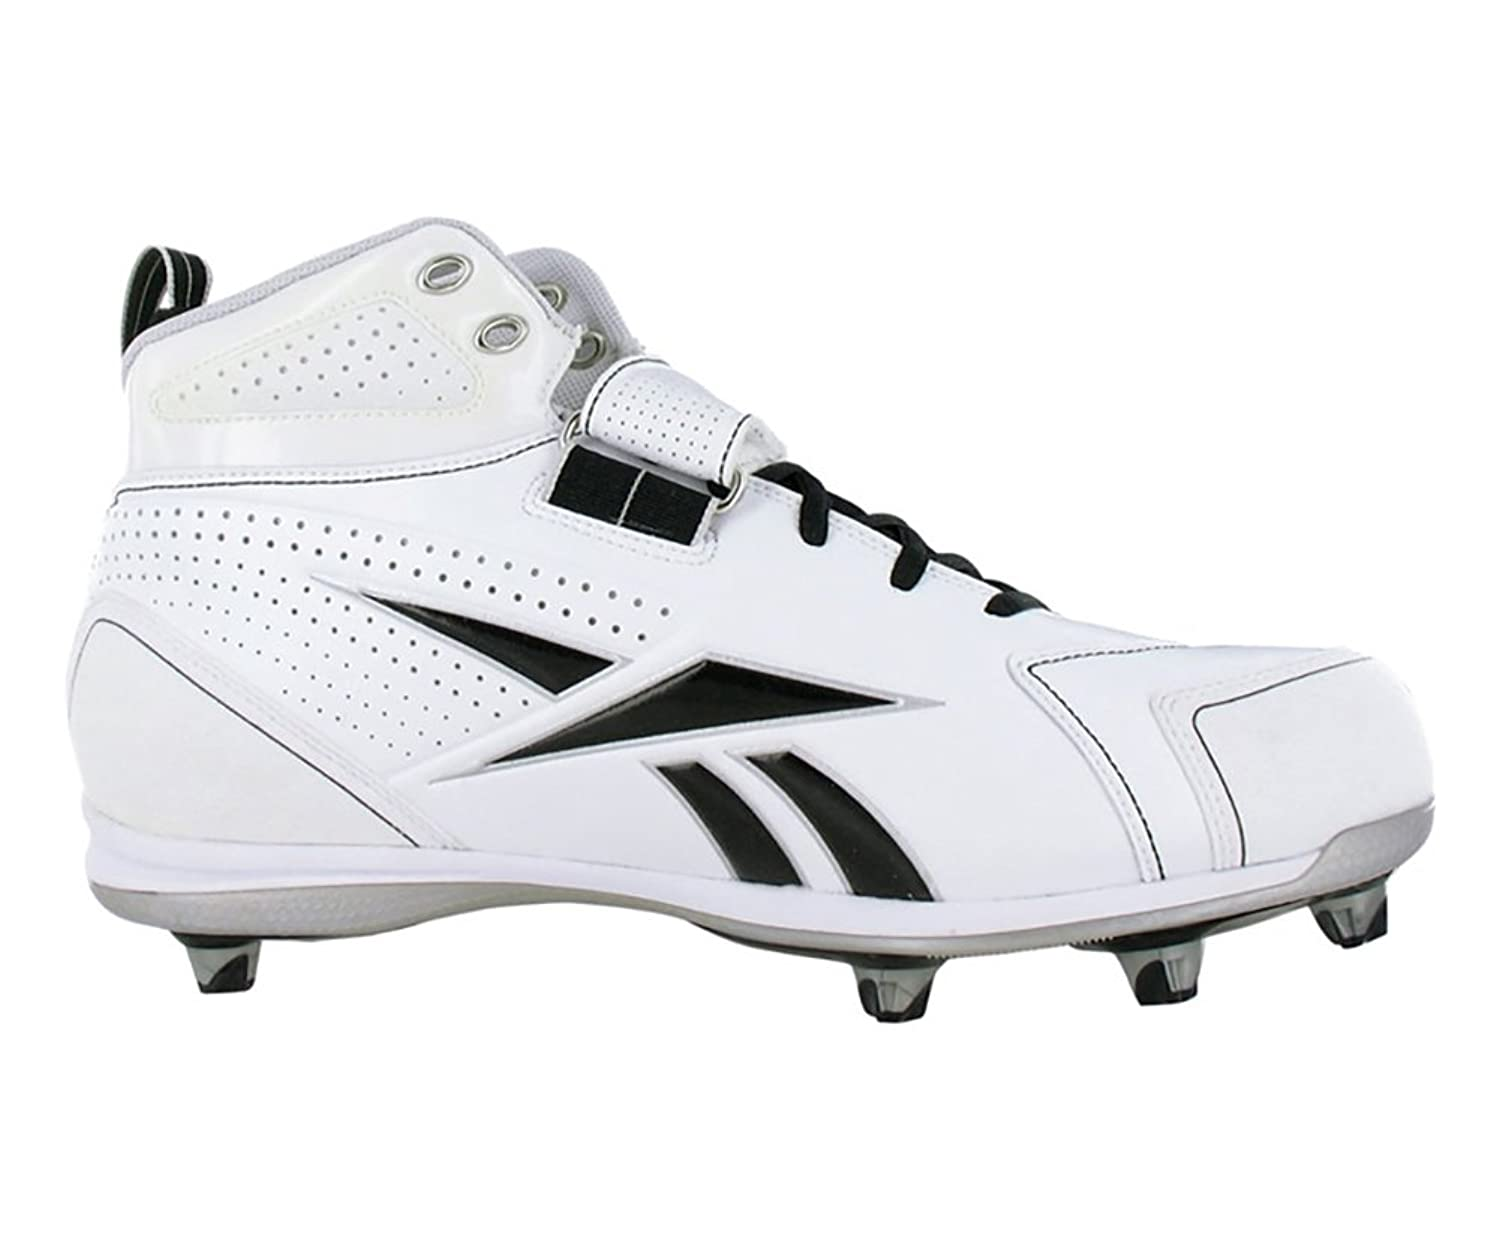 Reebok Pro Thorpe III Hex Men's Football Shoes Size US 15, Regular Width, Color  Black/White/Silver: Amazon.co.uk: Shoes & Bags